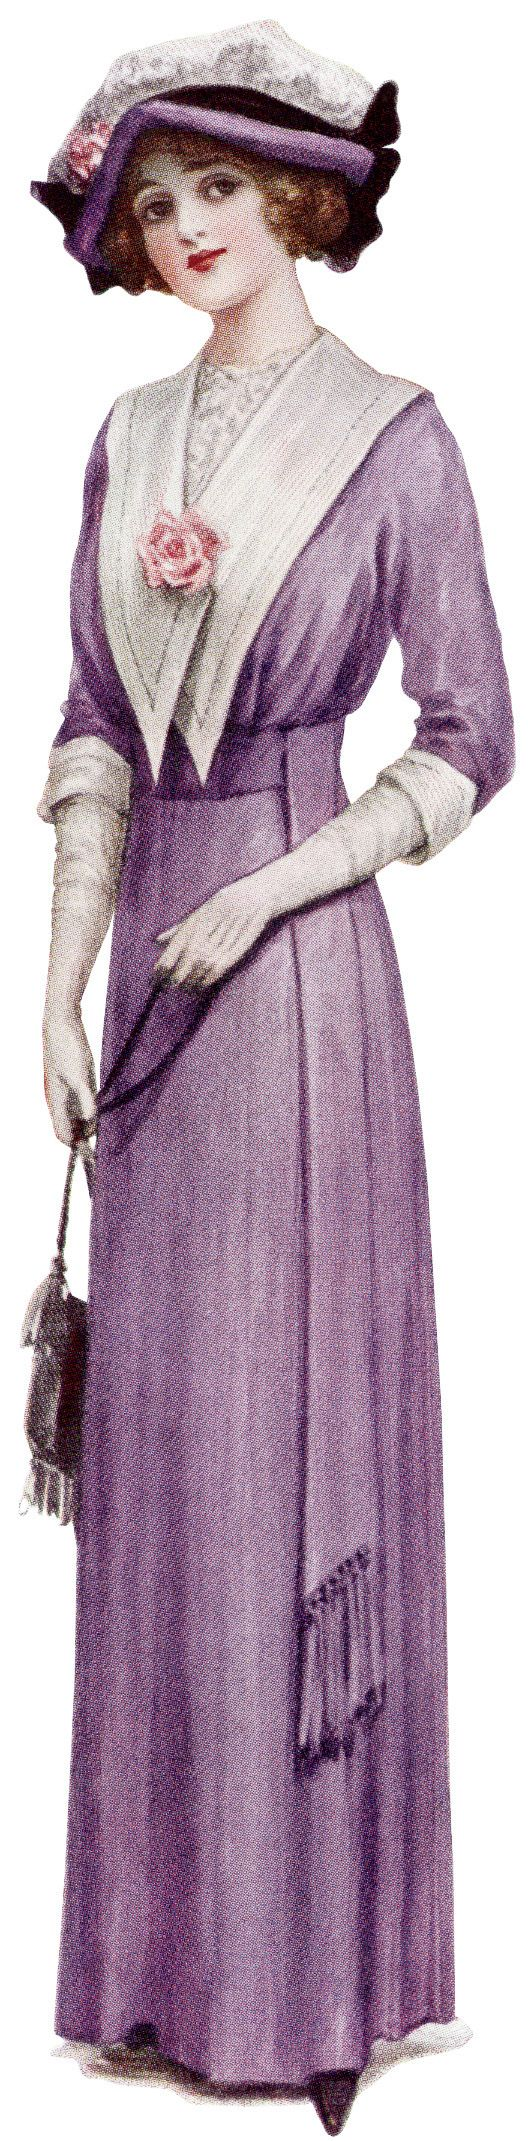 purple fashions | victorian lady, fashion 1912, vintage purple dress, antique fashion ...